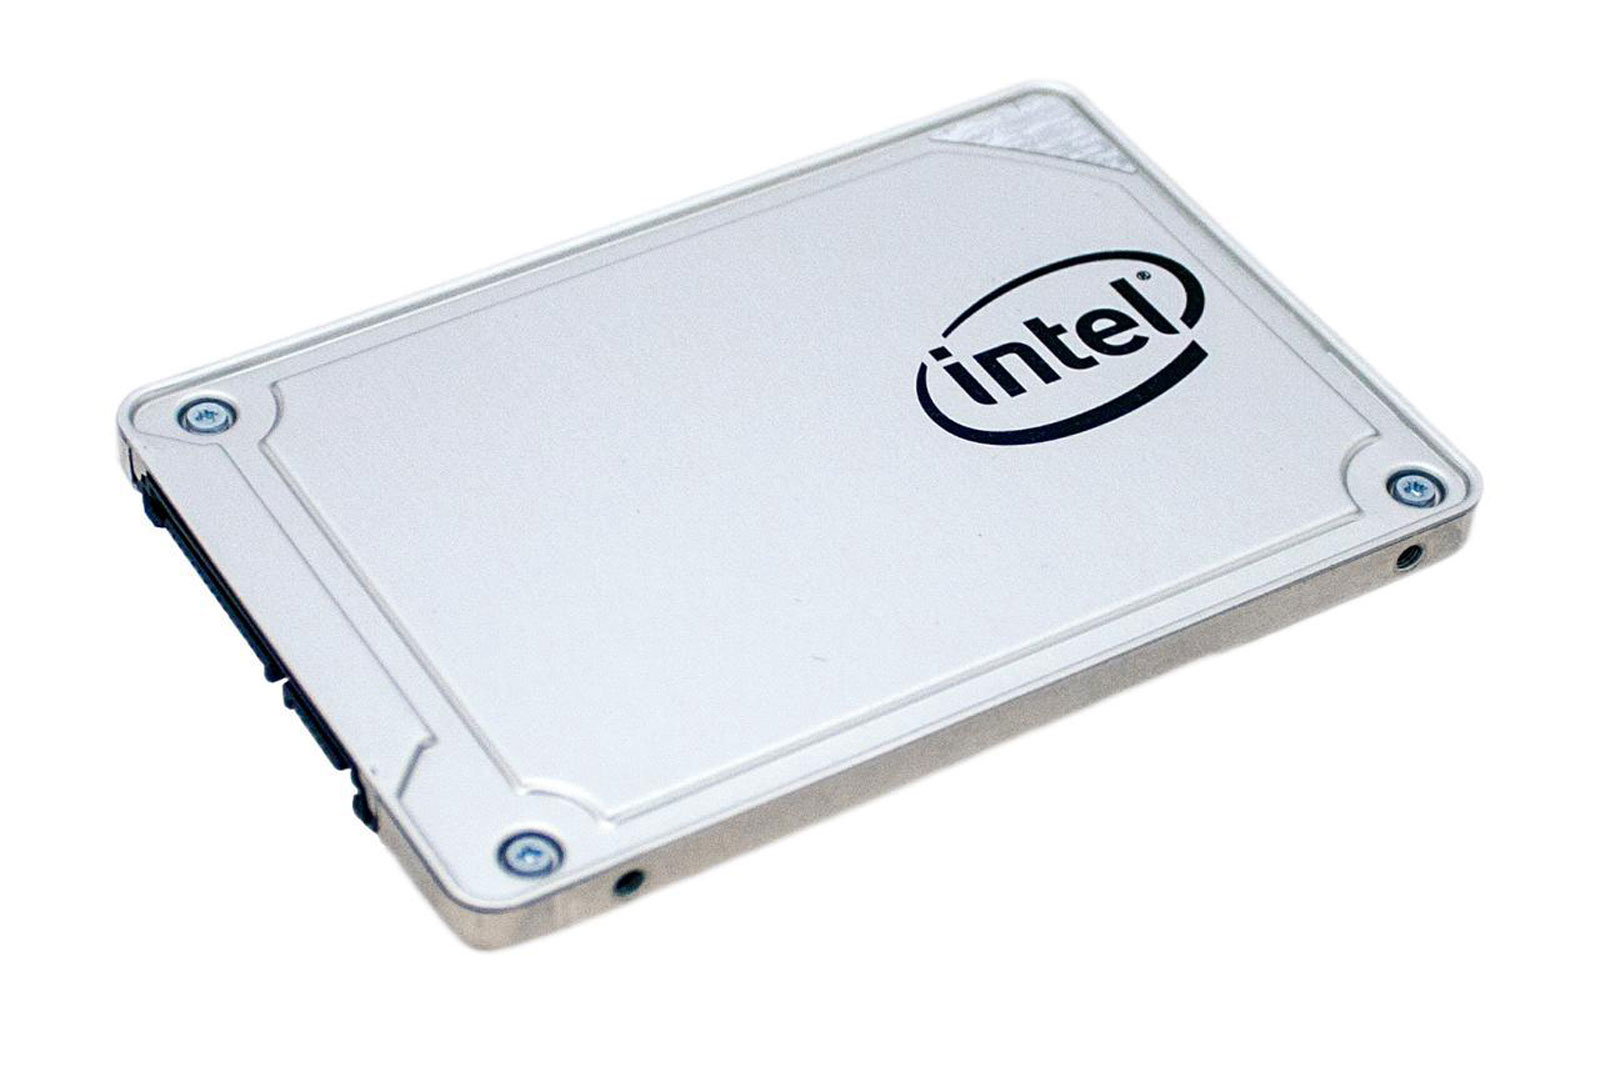 Intel's SSD 545s has size and speed at an affordable price